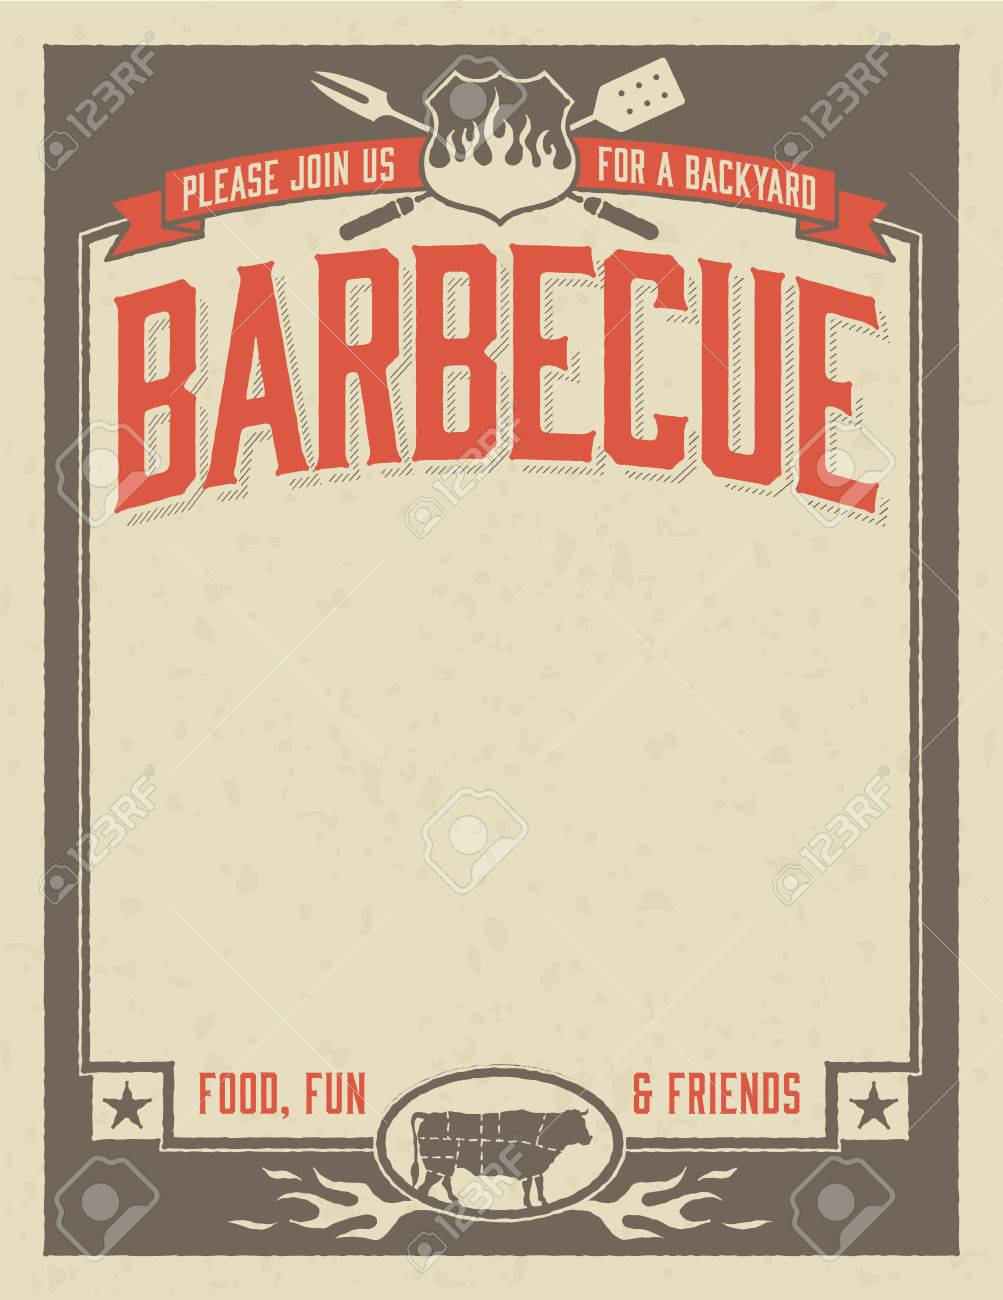 Backyard Barbecue Invitation Template Royalty Free Cliparts, Vectors ...